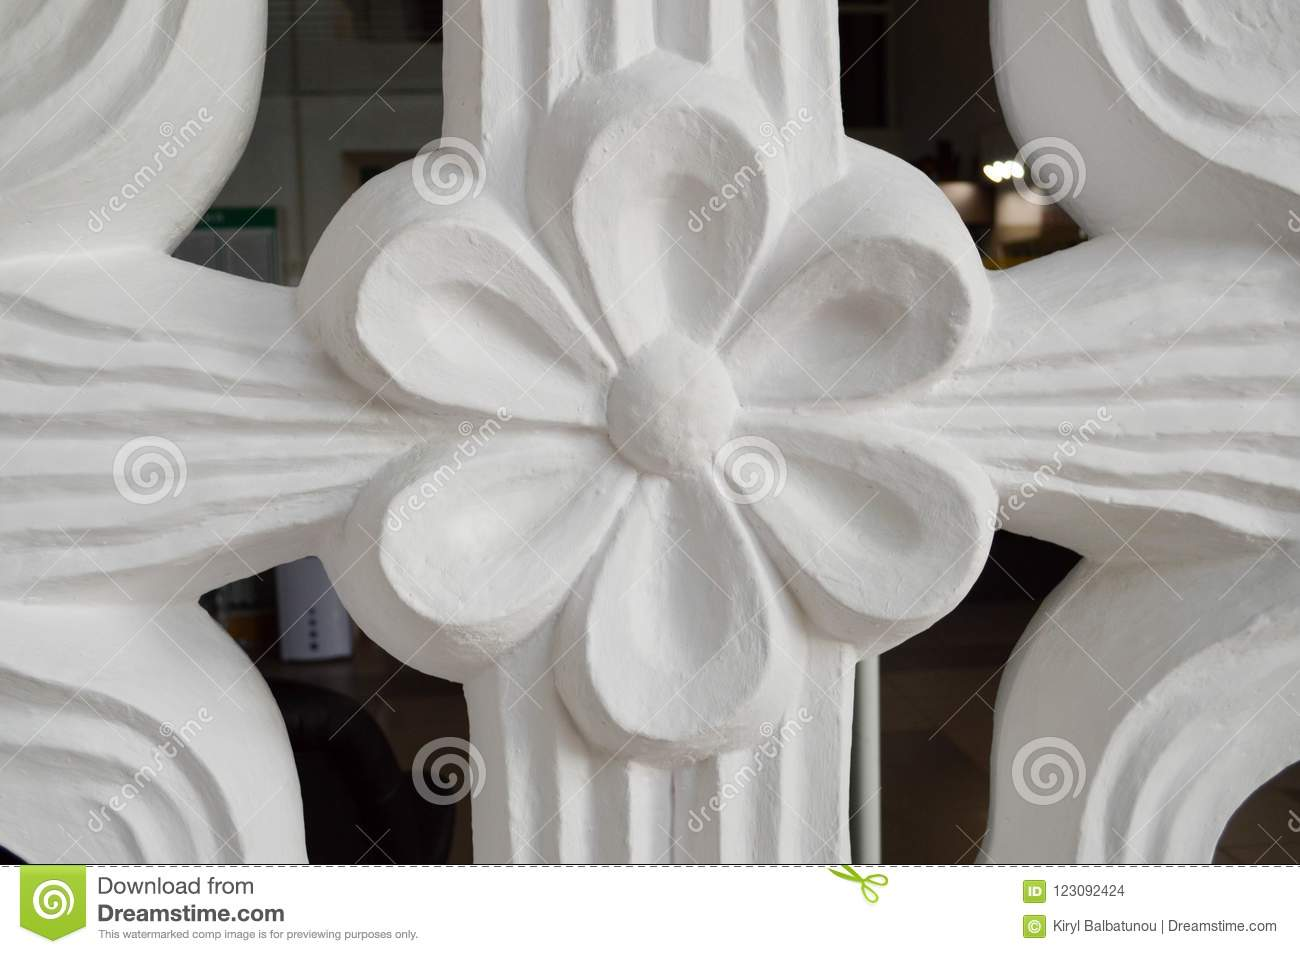 Texture of a white flower with petals of relief bulk from a texture of a white flower with petals of relief bulk from a decorative plaster of a stone with a pattern the background mightylinksfo